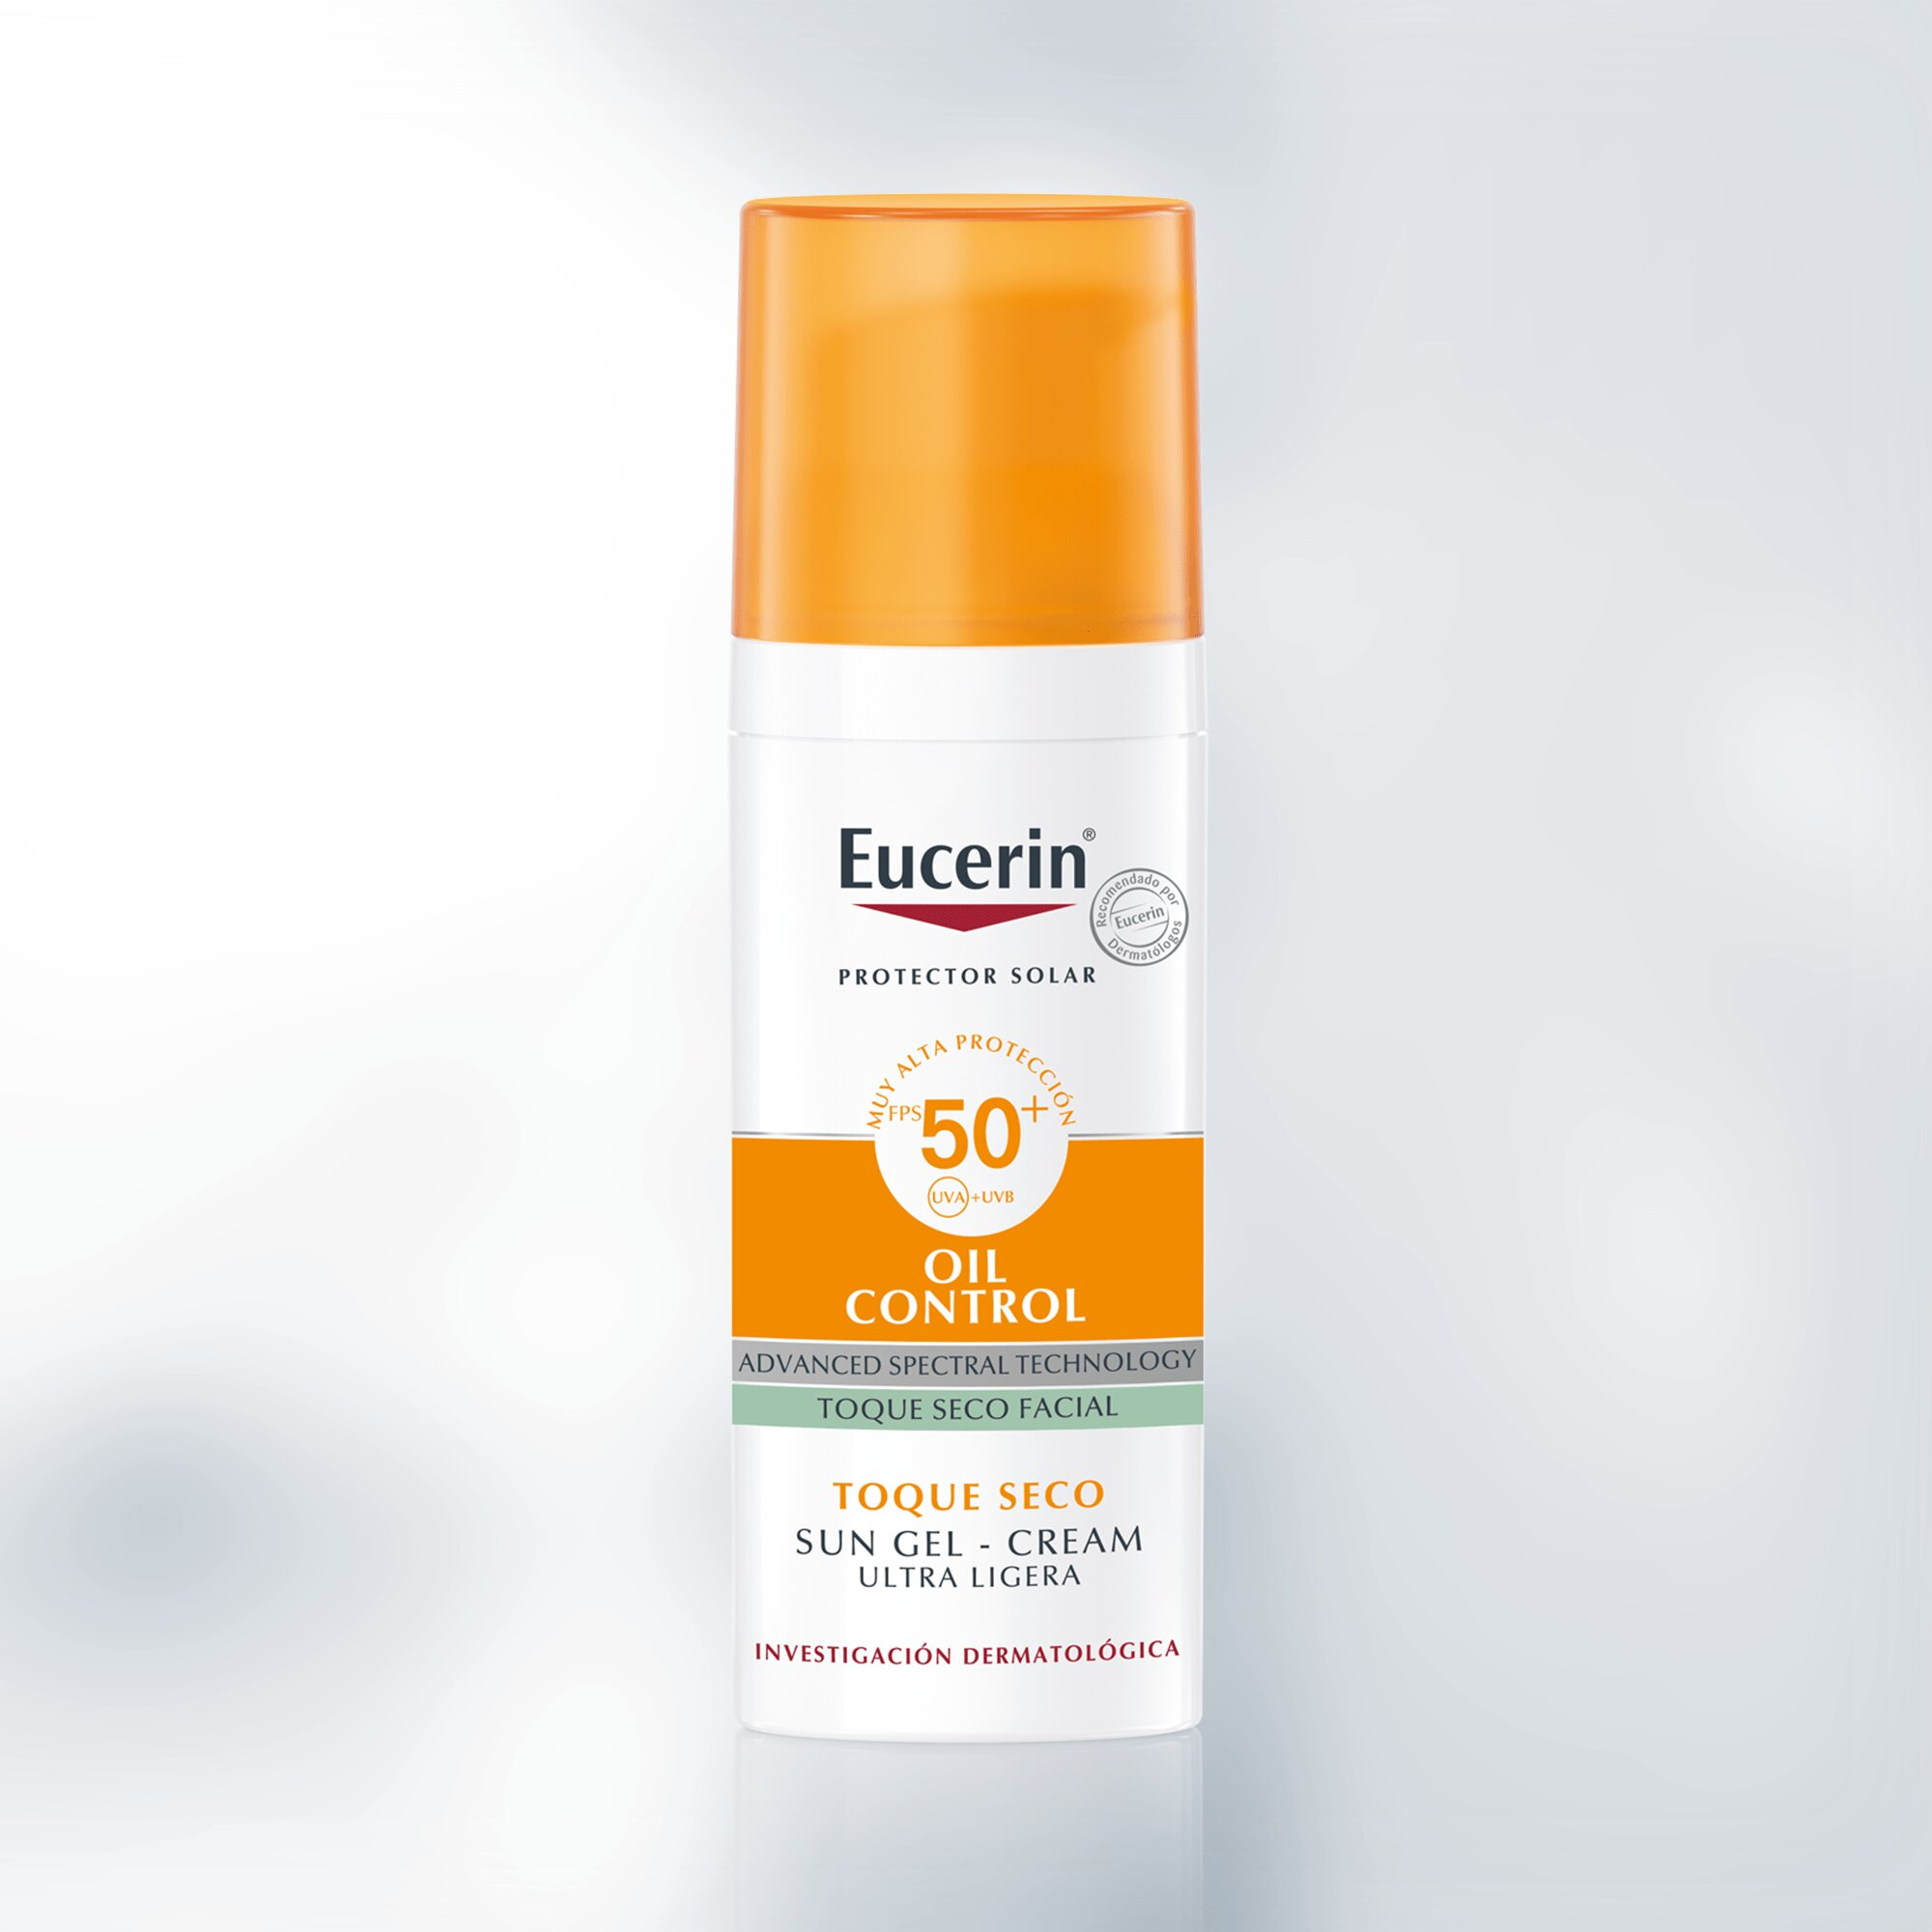 Eucerin Gel-Crema Oil Control Dry Touch Spf 50+